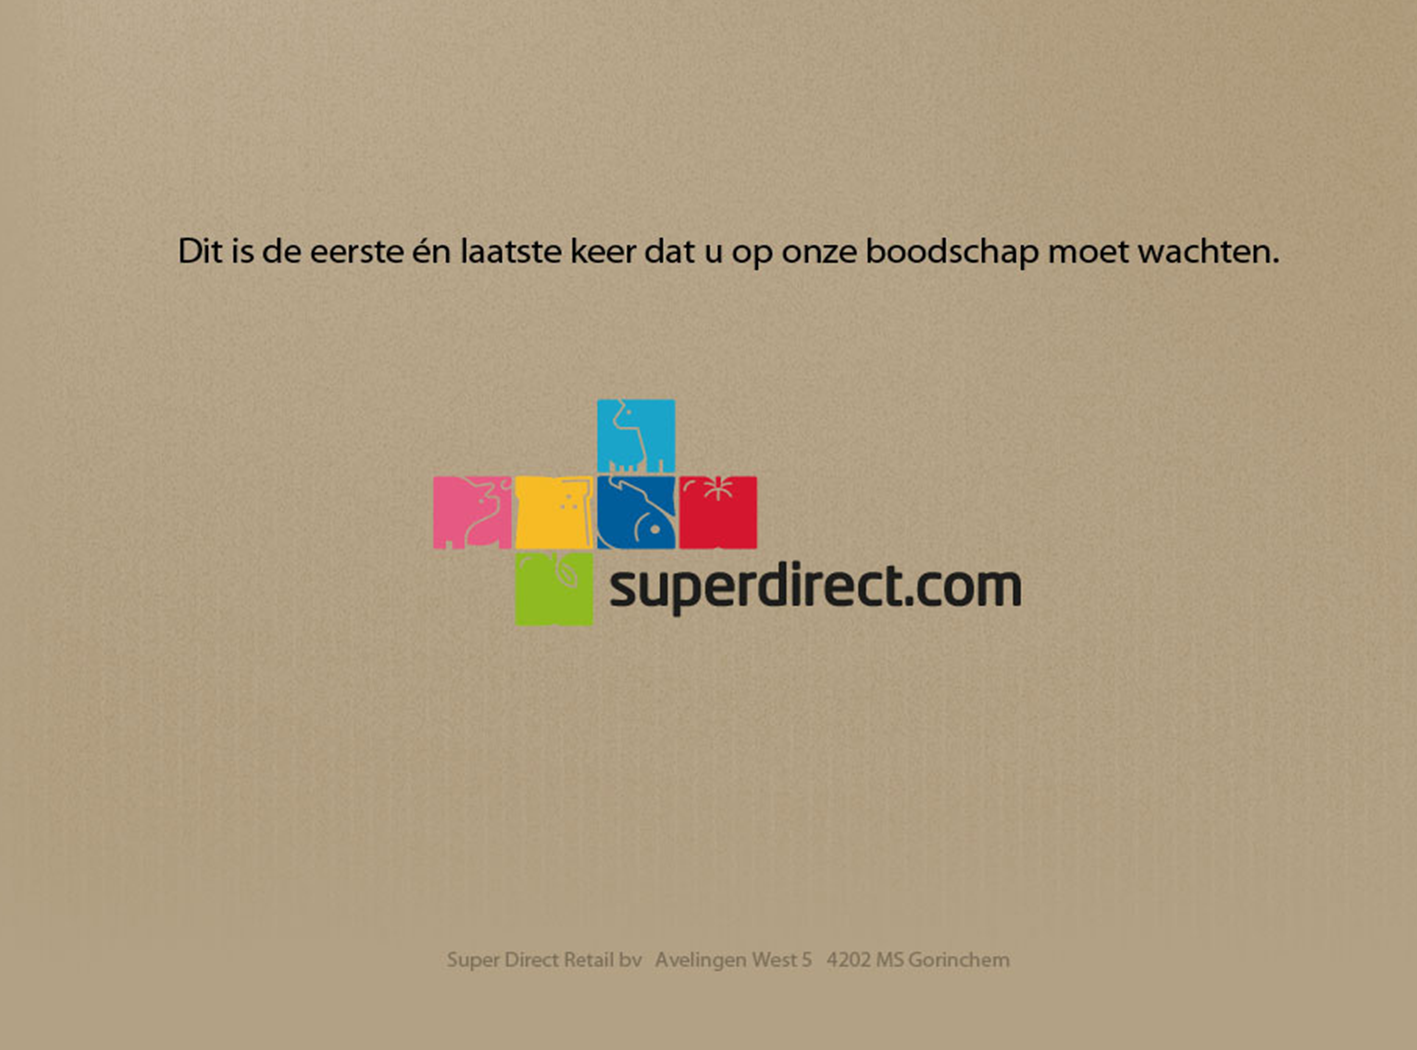 superdirect